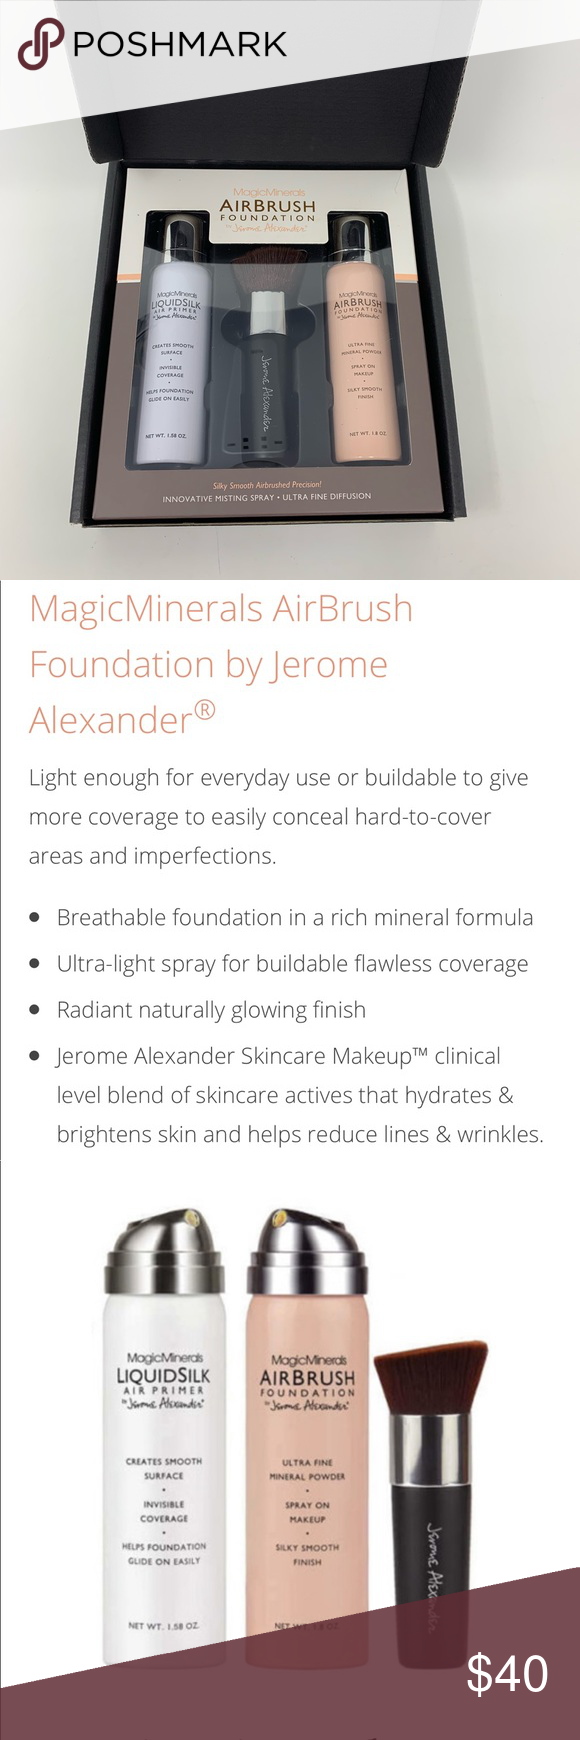 Airbrush Foundation by Jerome Alexander! New release by